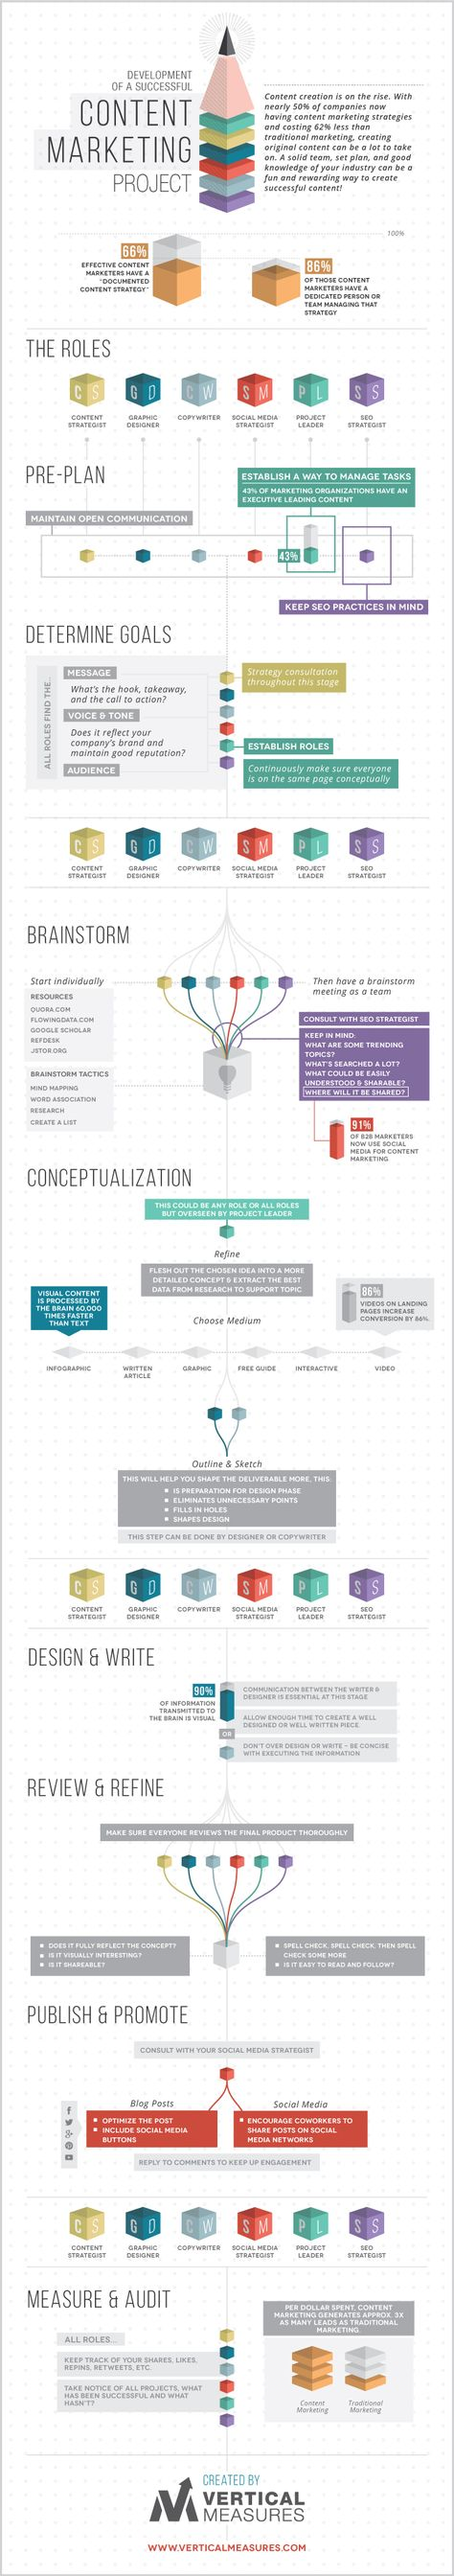 Developing a Successful Content Marketing Strategy - infographic